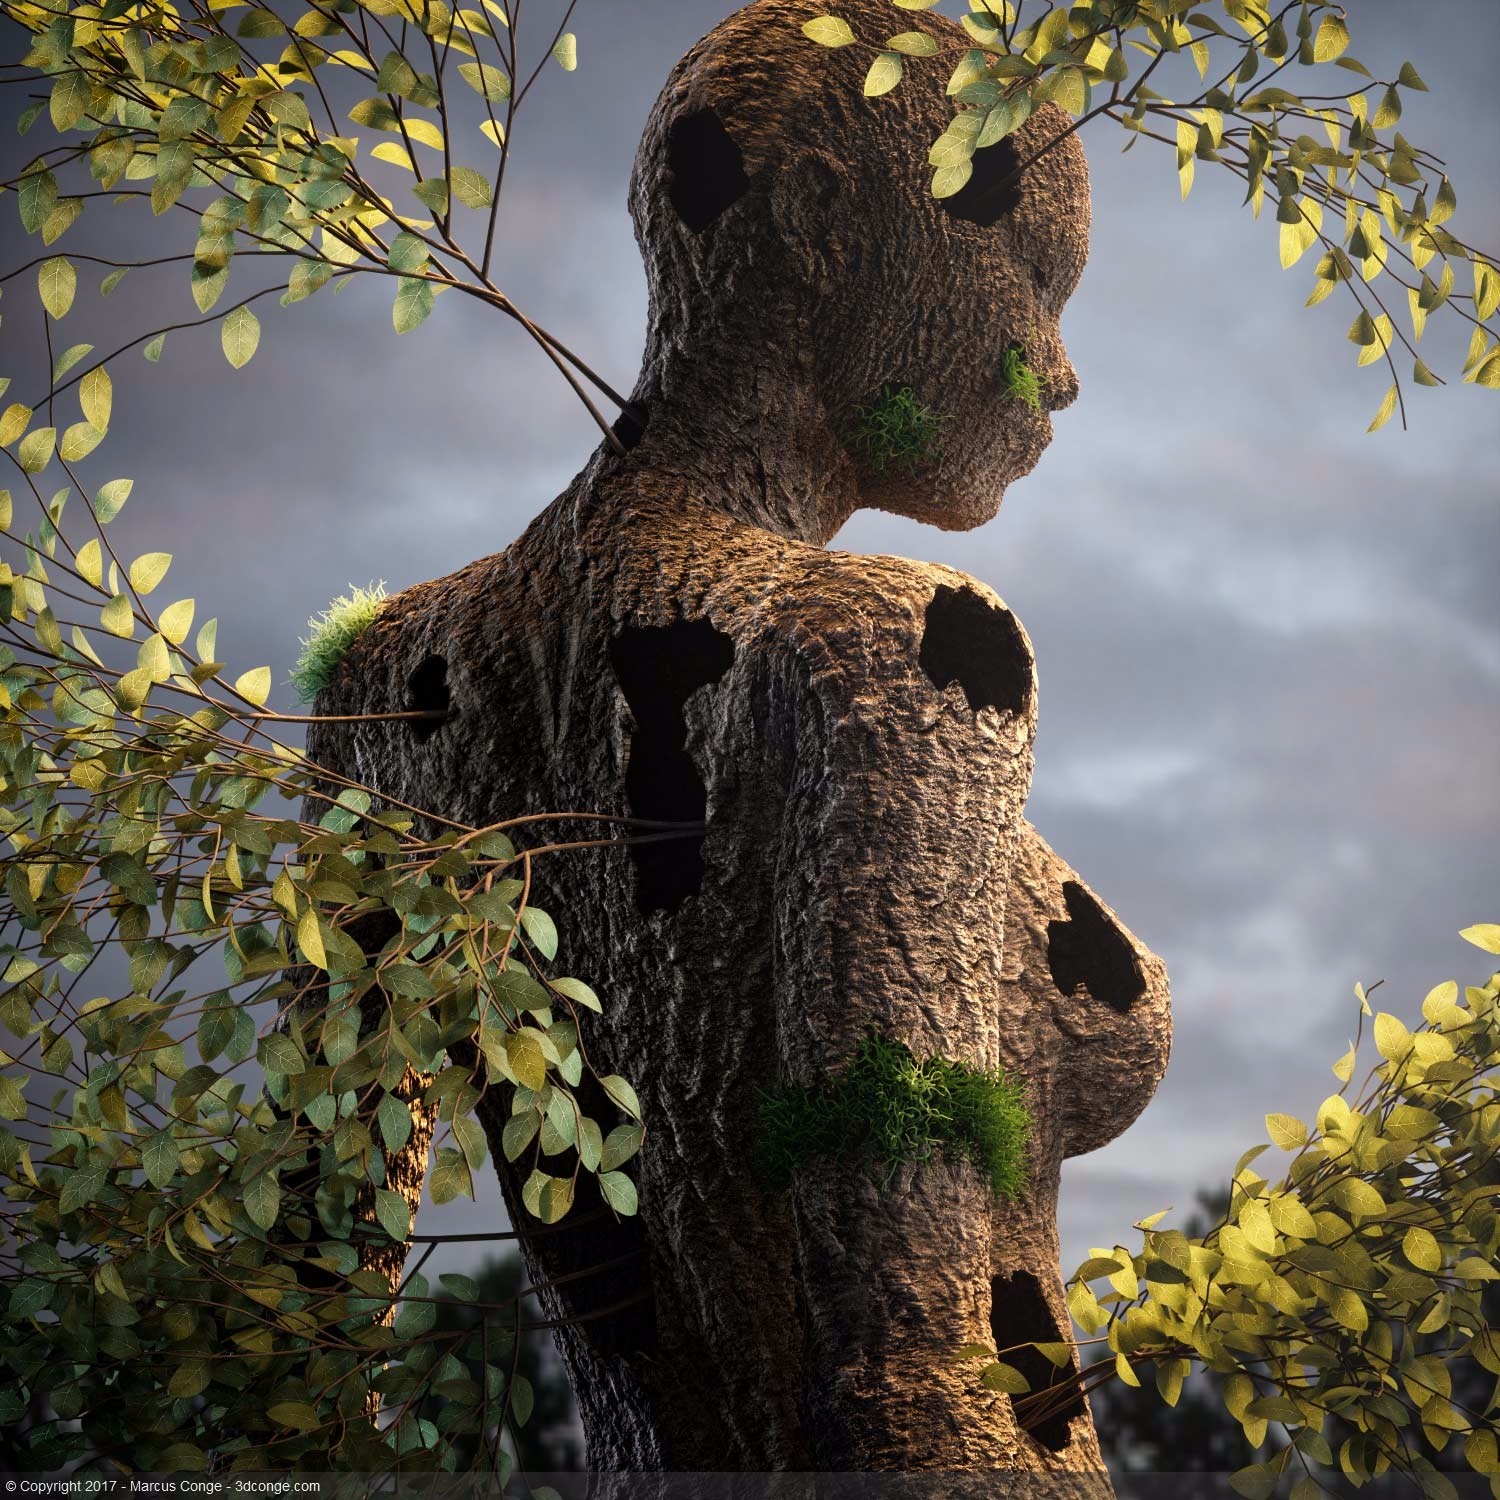 Branching - cinema4d, 3d, create - rockingthepixel | ello